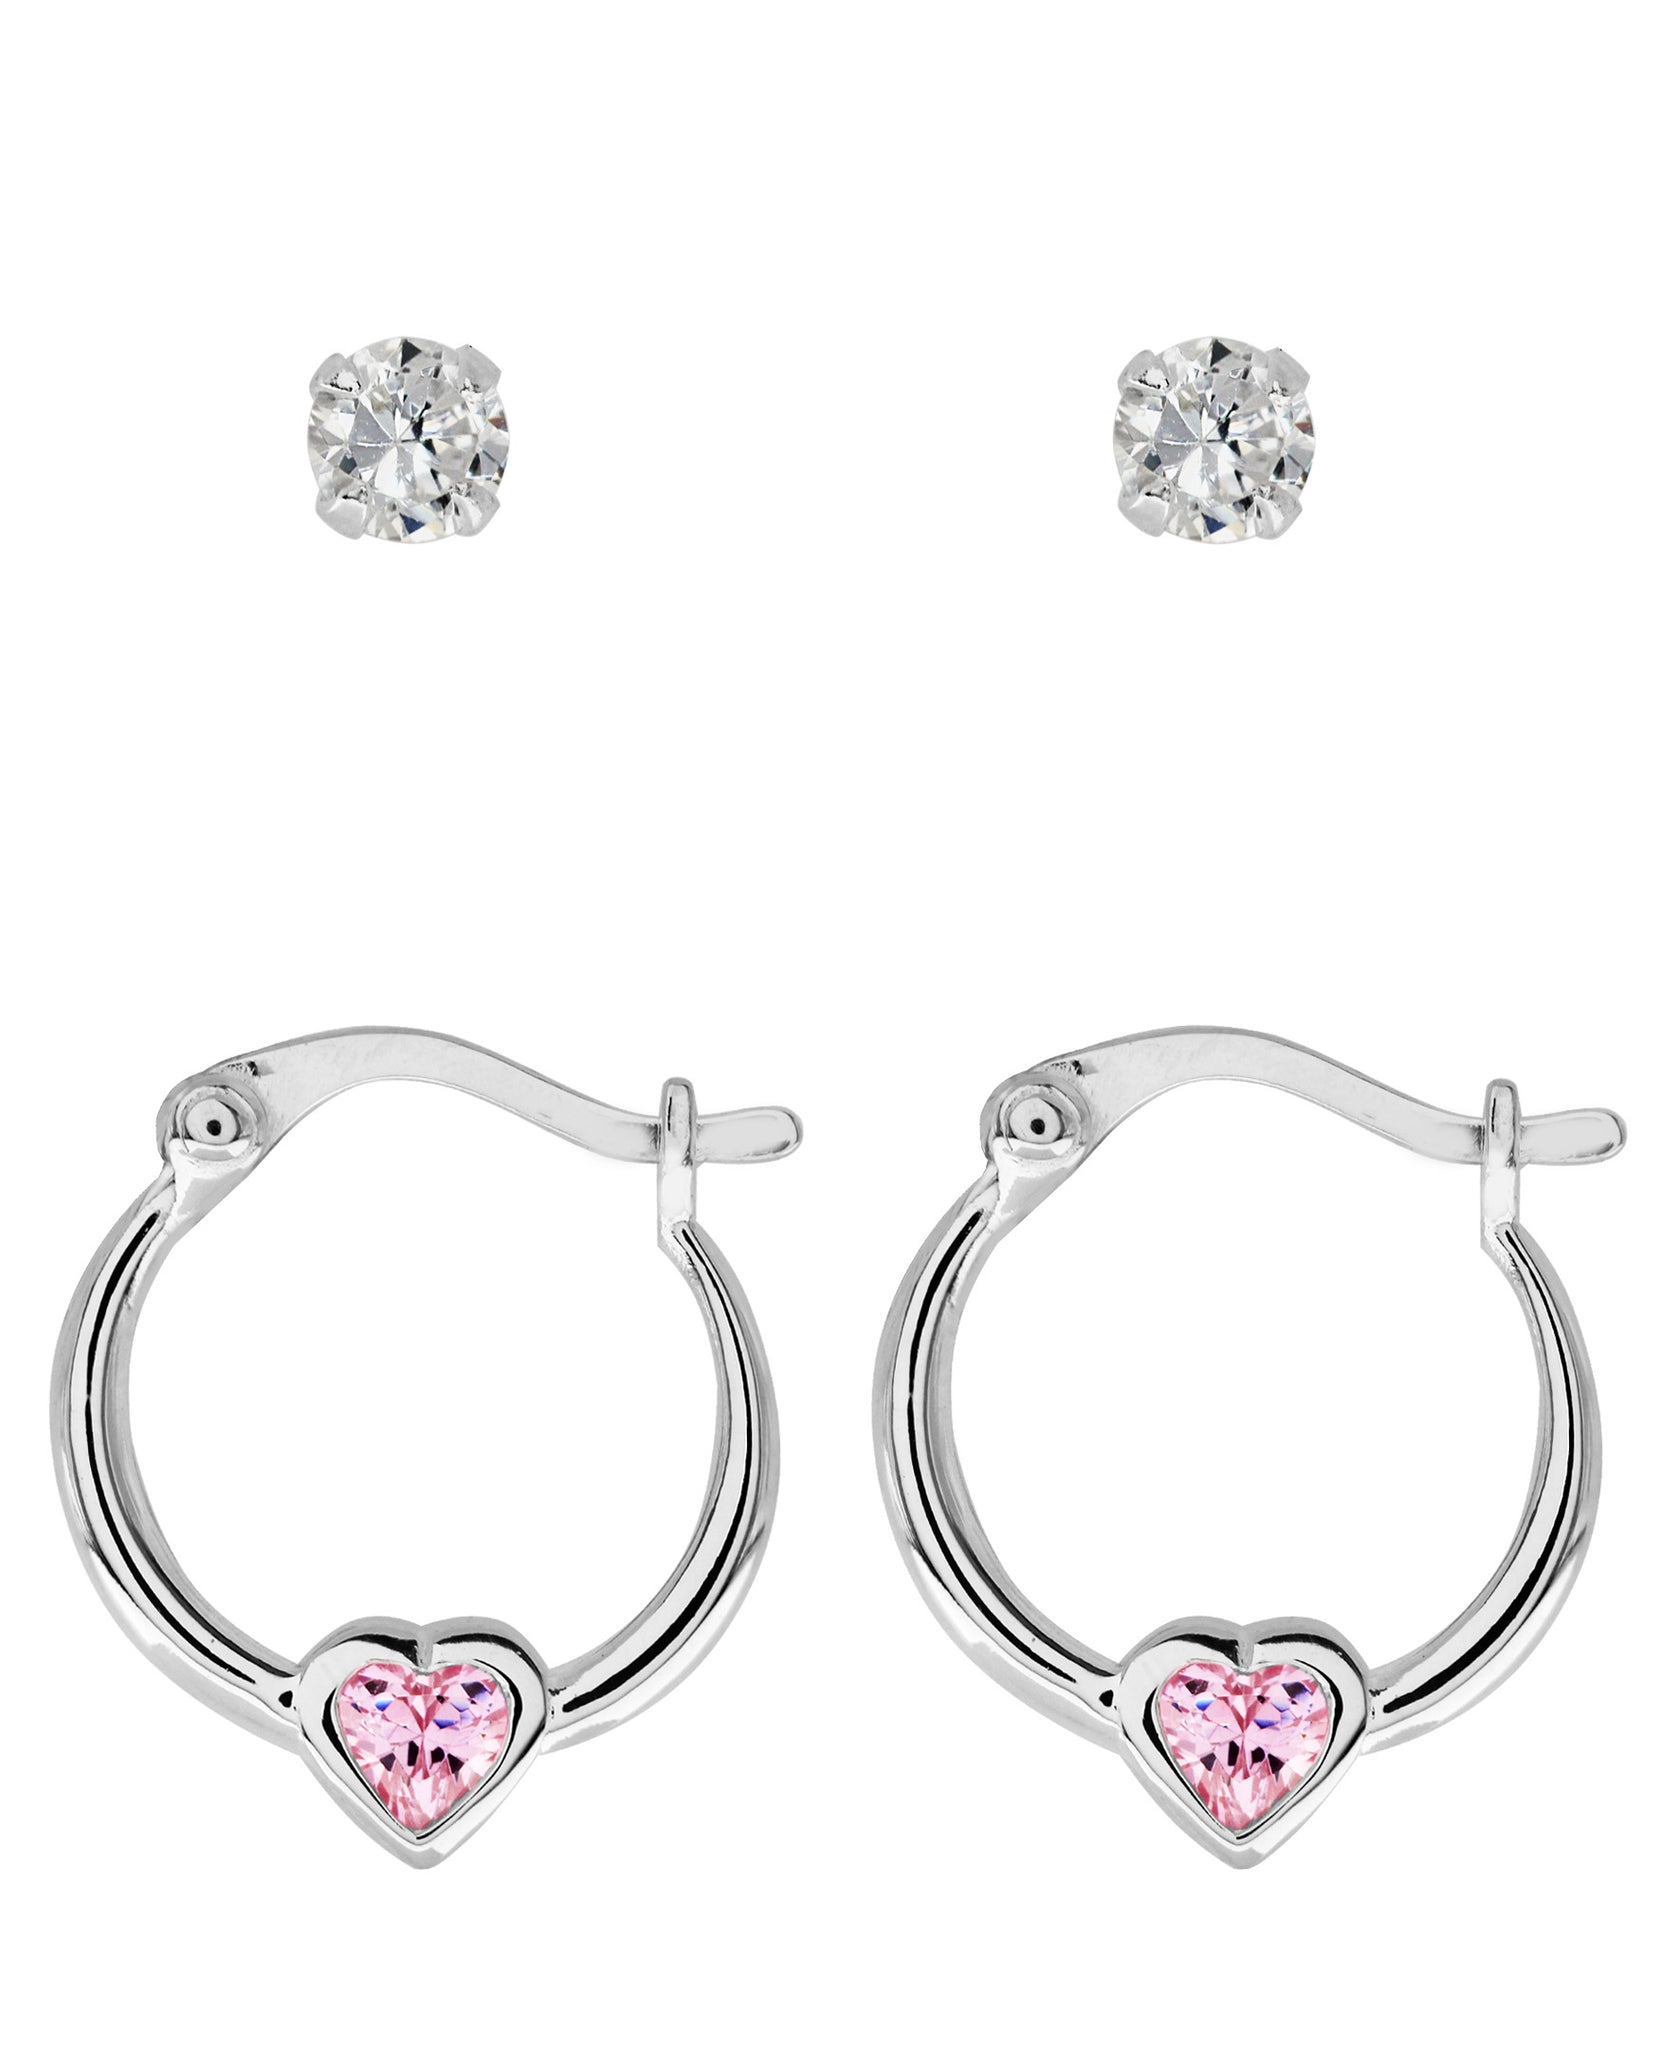 Children's Sterling Silver Cubic Zirconia Studs & Hoops - Set of 2 - Rhona Sutton Jewellery